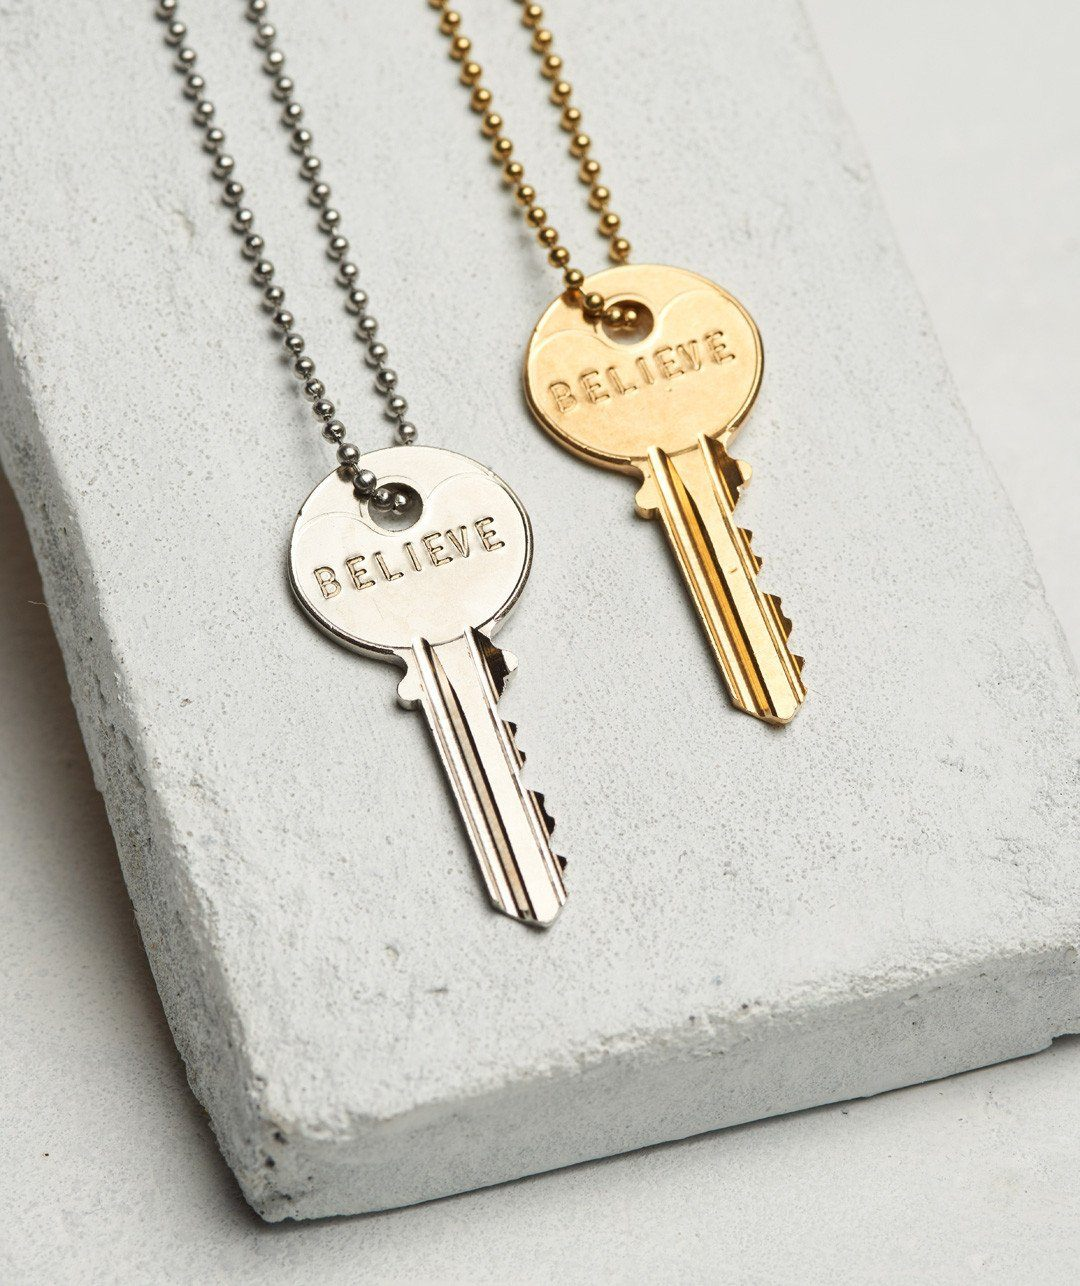 Pay It Forward Necklace Set